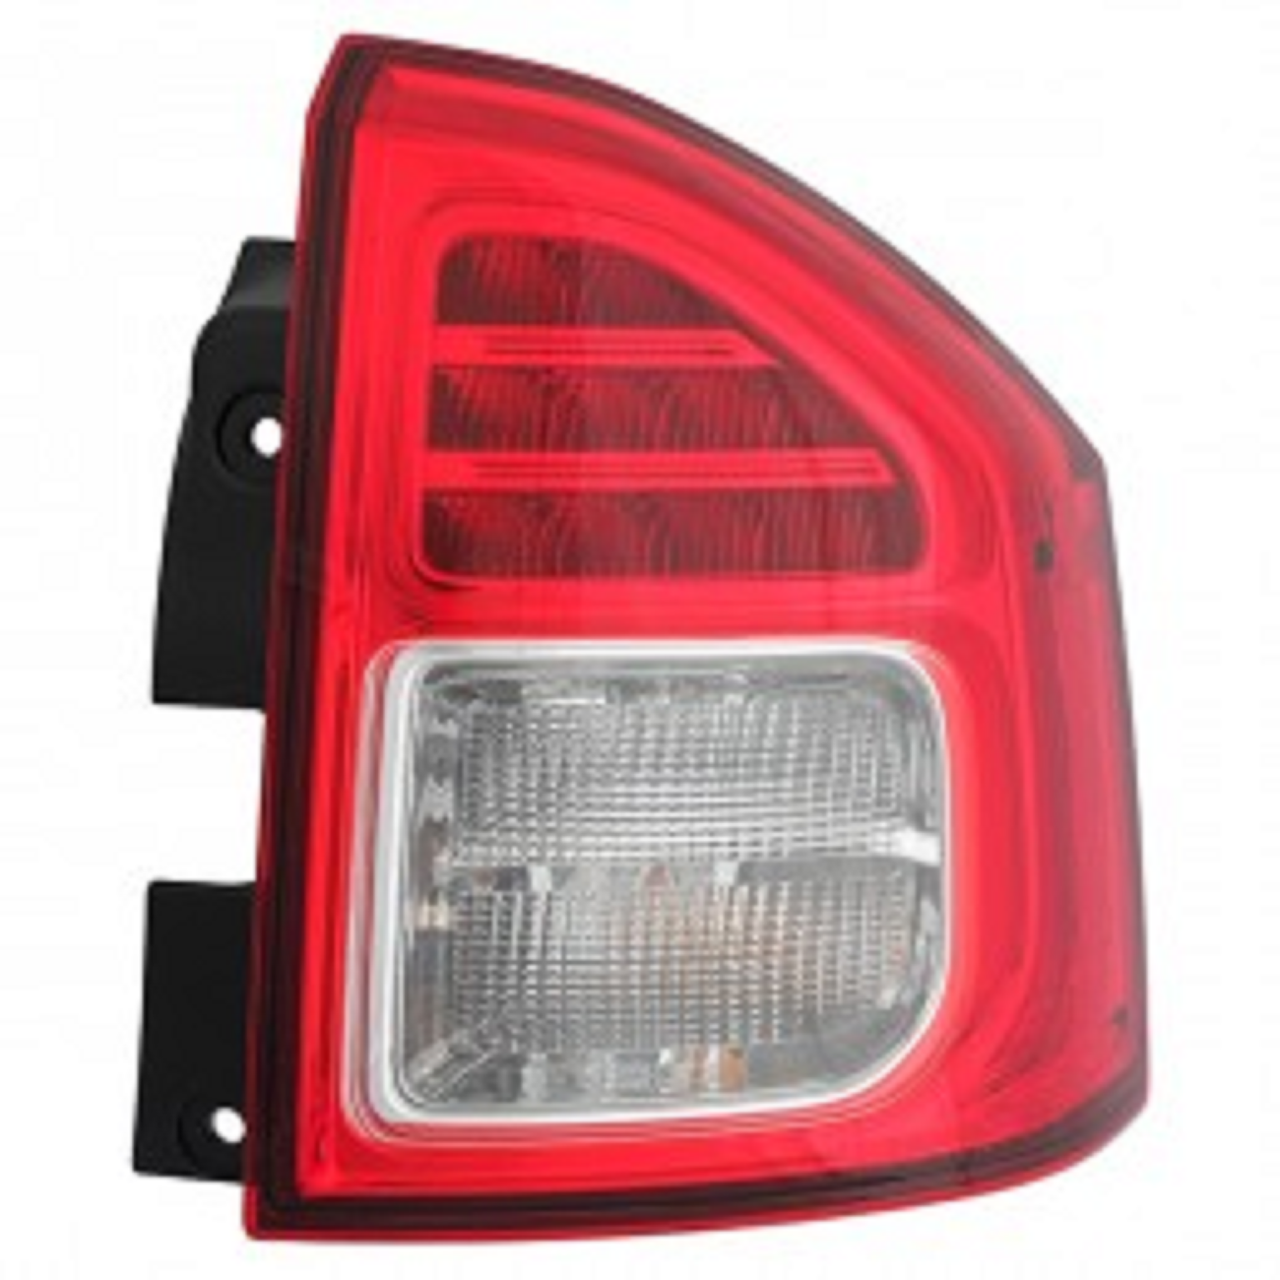 Jeep Compass 2011 2012 2013 tail light right passenger